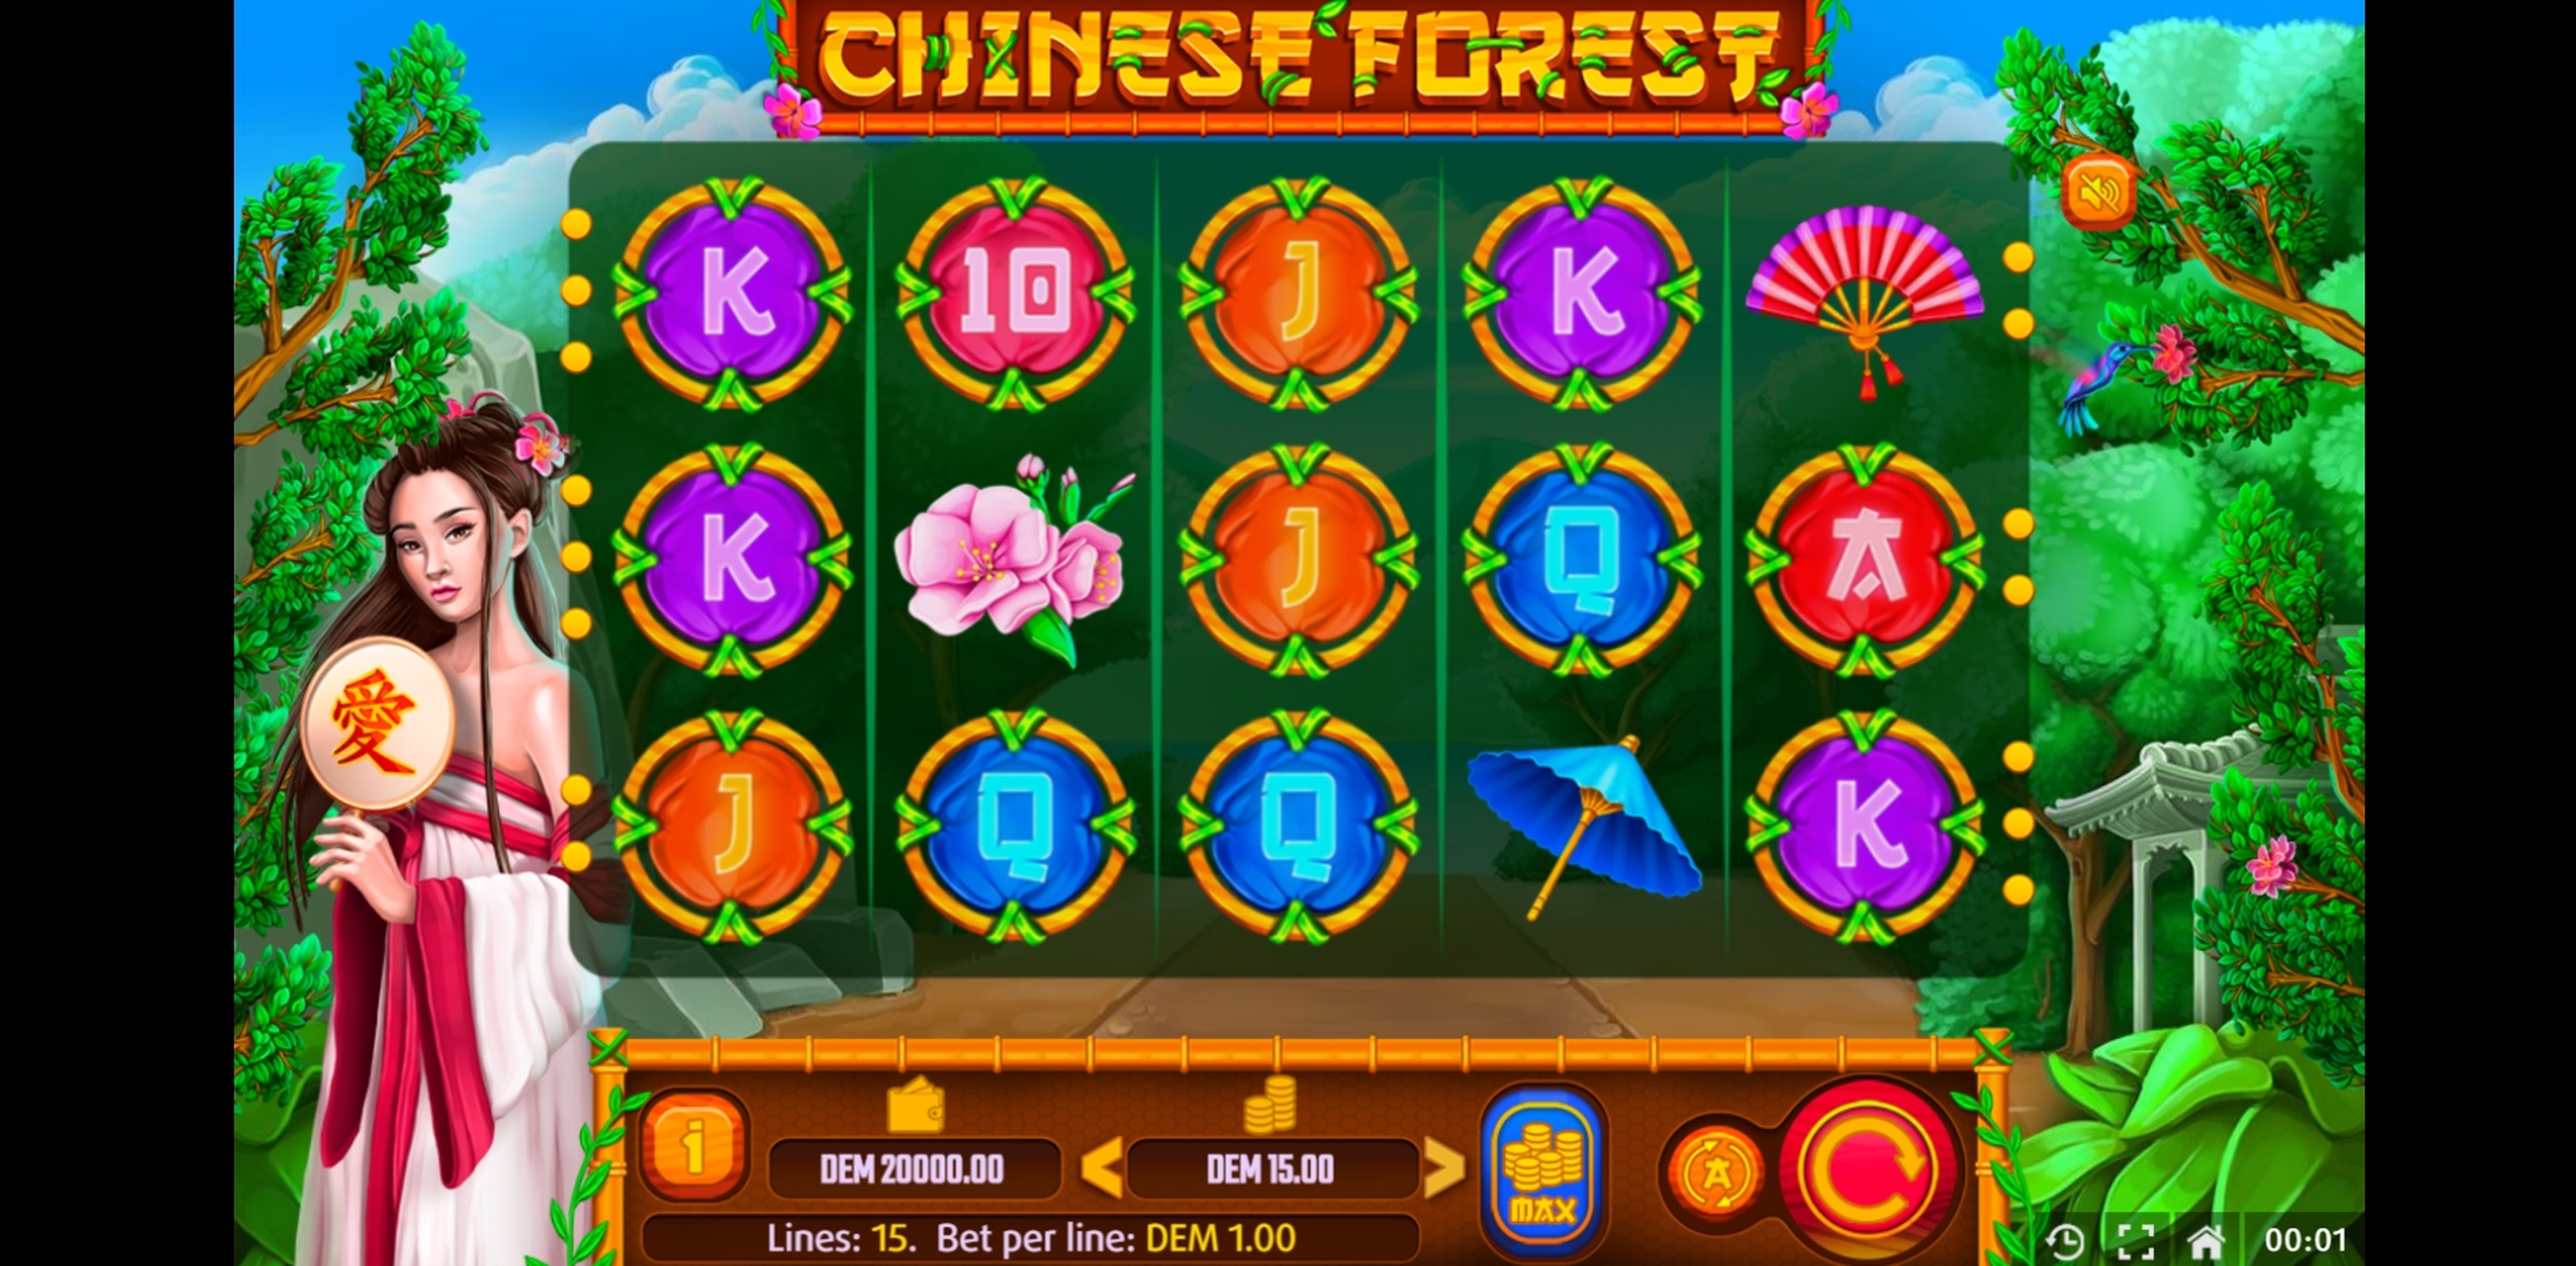 Reels in Chinese Forest Slot Game by X Line